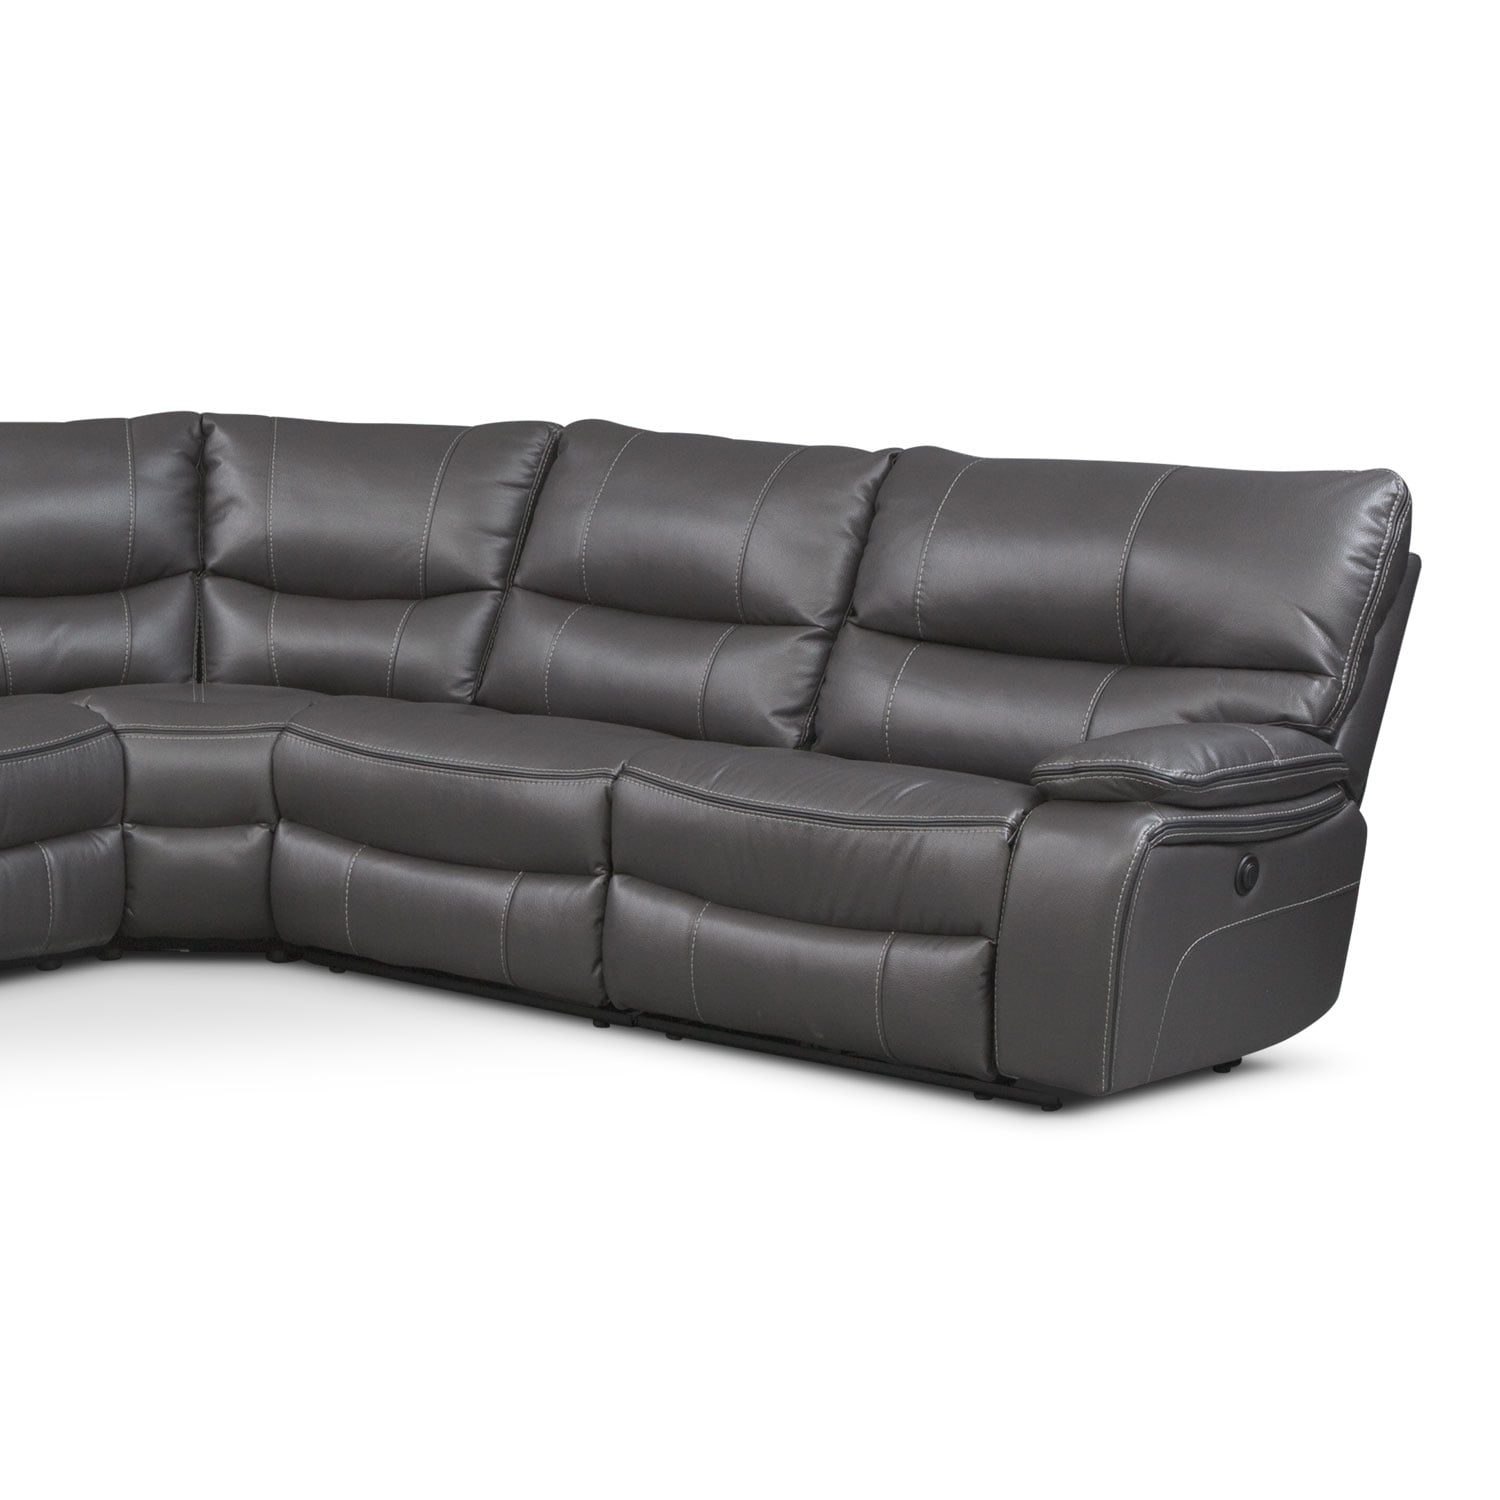 Midori 6 Pc Leather Power Reclining Sectional Sofa: Orlando 6-Piece Power Reclining Sectional With 2